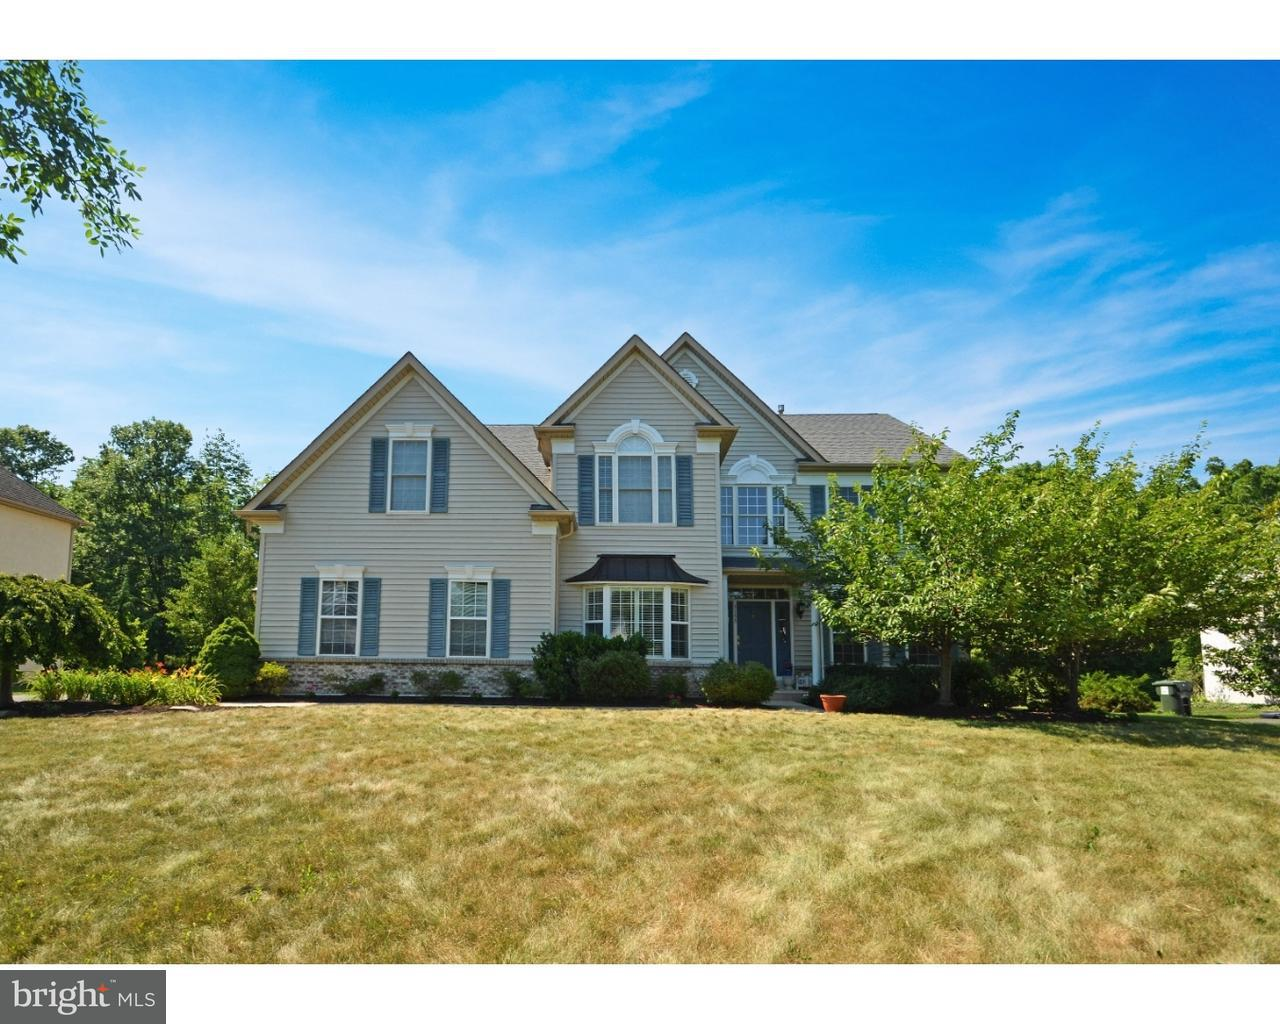 5133 Craigs View Pipersville, PA 18901